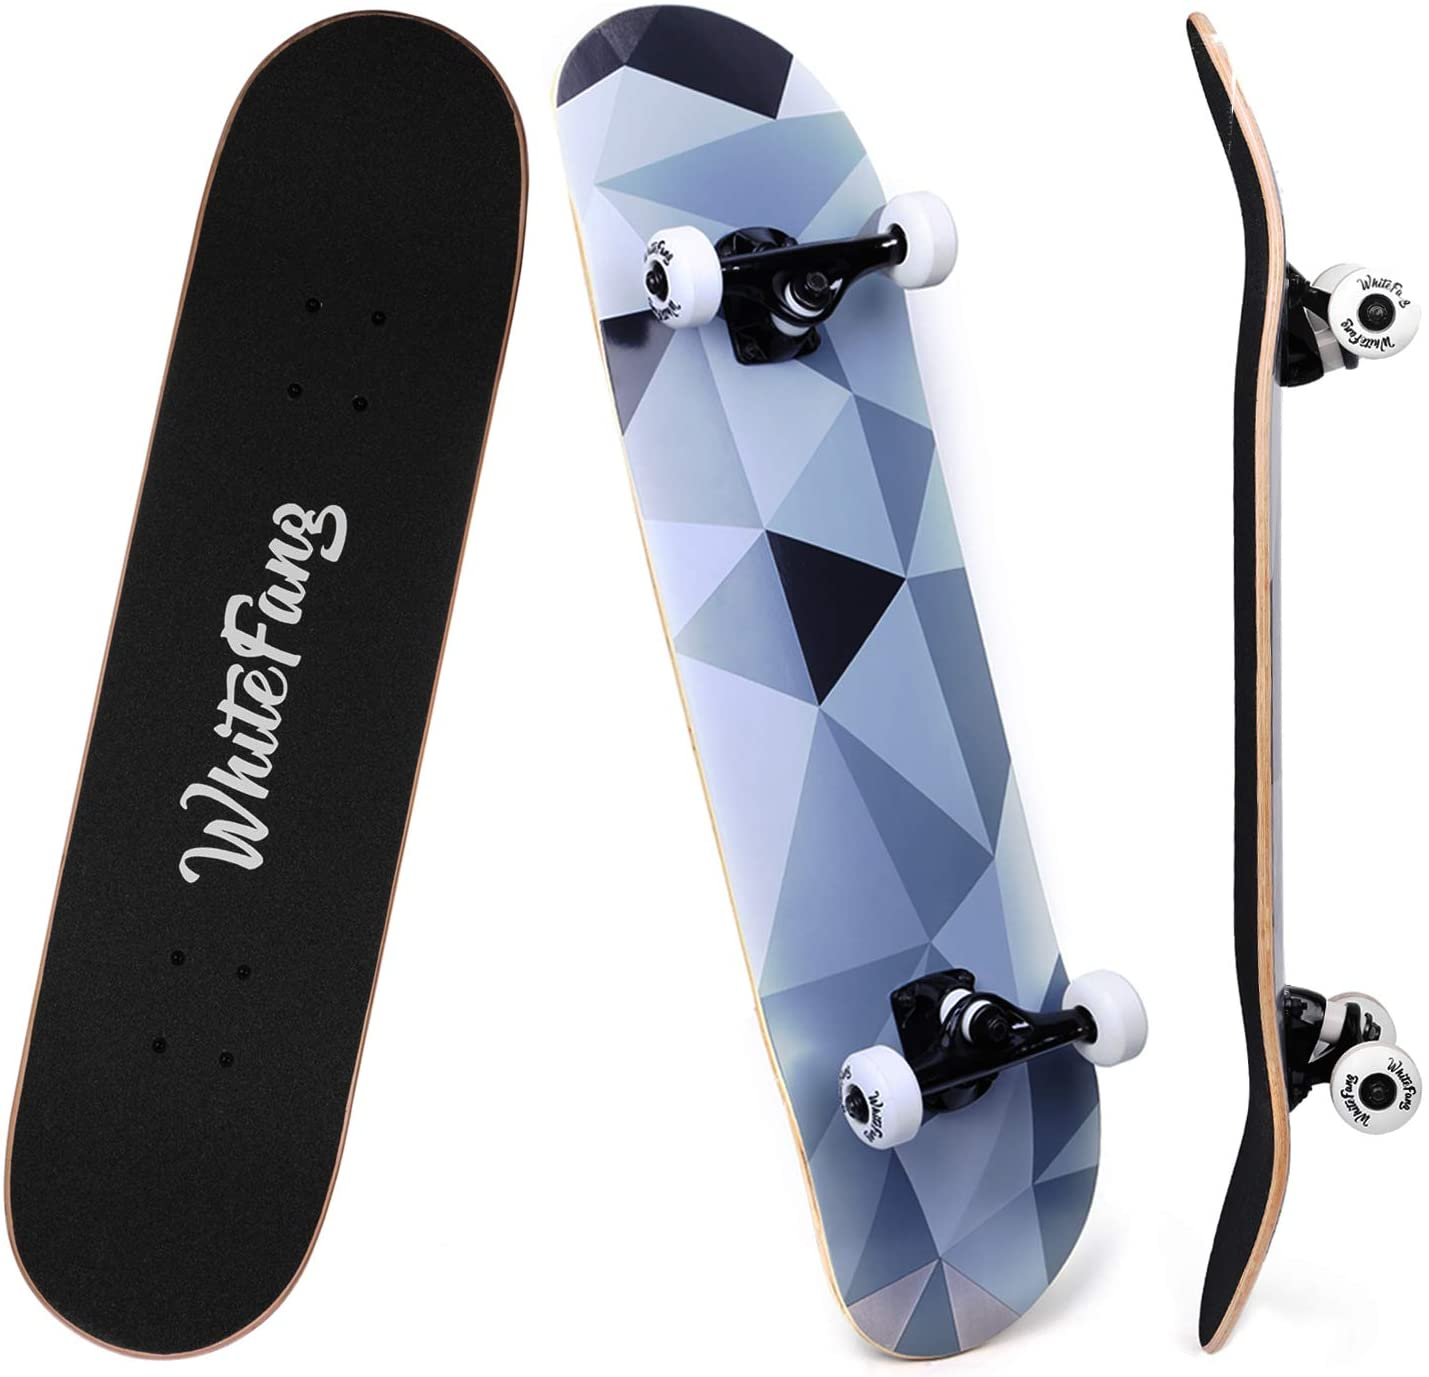 WhiteFang Skateboards for Beginners, Complete Skateboard 31 x 7.88, 7 Layer Canadian Maple Double Kick Concave Standard and Tricks Skateboards for Kids and Beginners (Diamond) : Sports & Outdoors